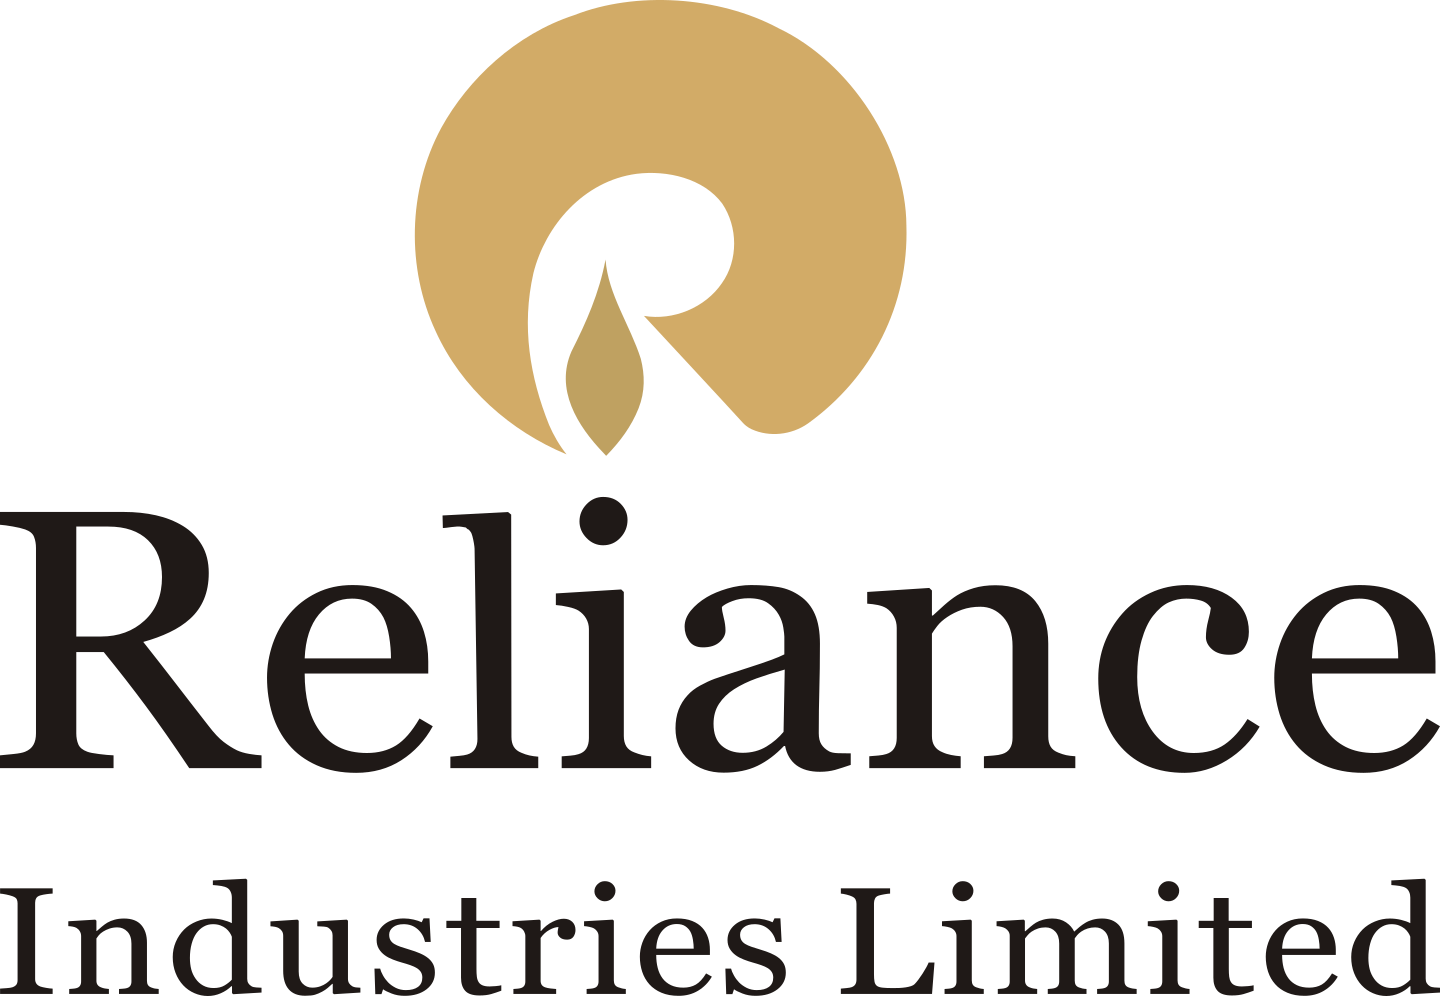 reliance industries logo 2 - Reliance Industries Logo